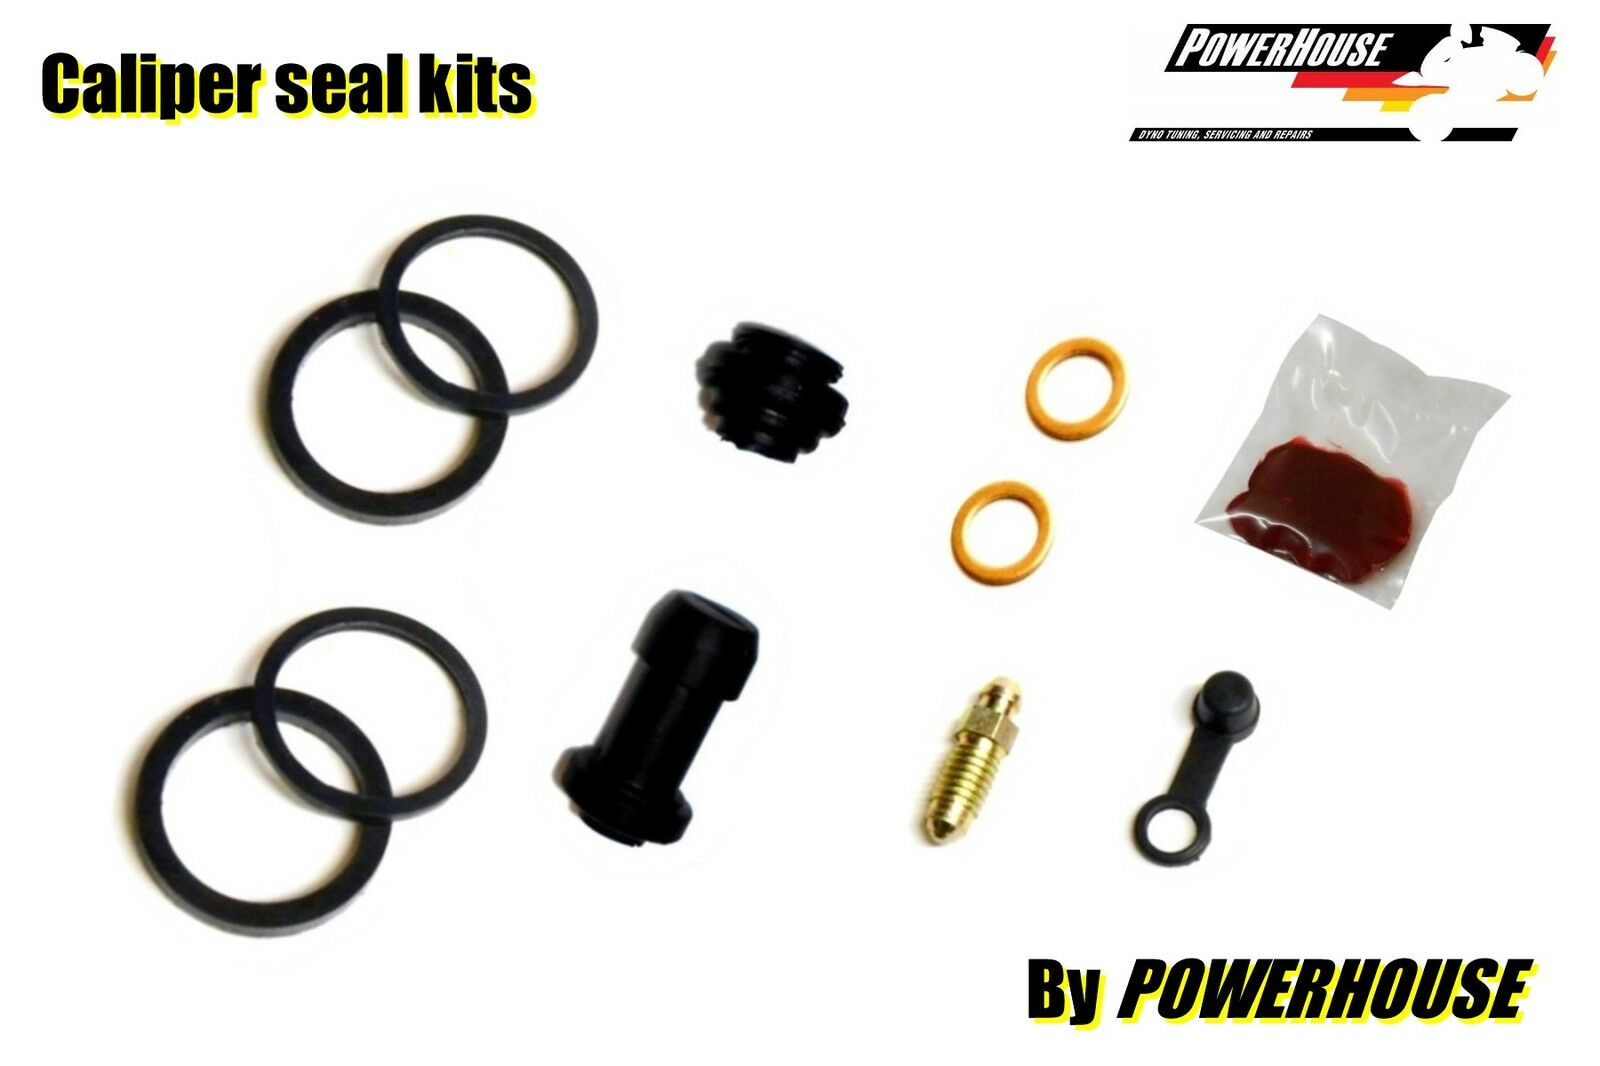 Triumph Speed Triple 955i 2000 stainless steel both front calliper pinch bolts